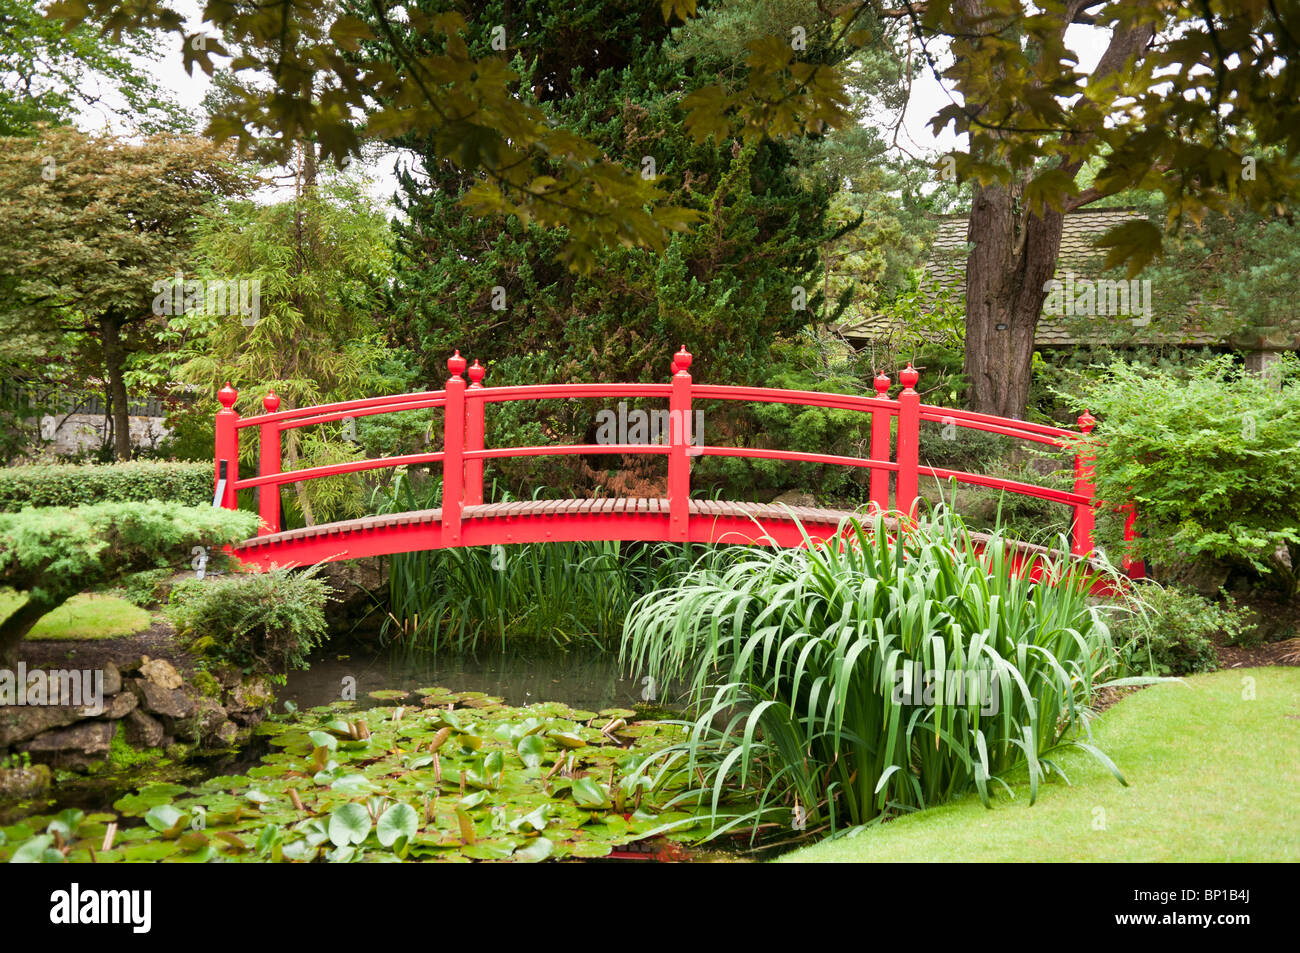 Red Bridge Over A Pond In A Formal Japanese Garden At The National Stud,  Kildare